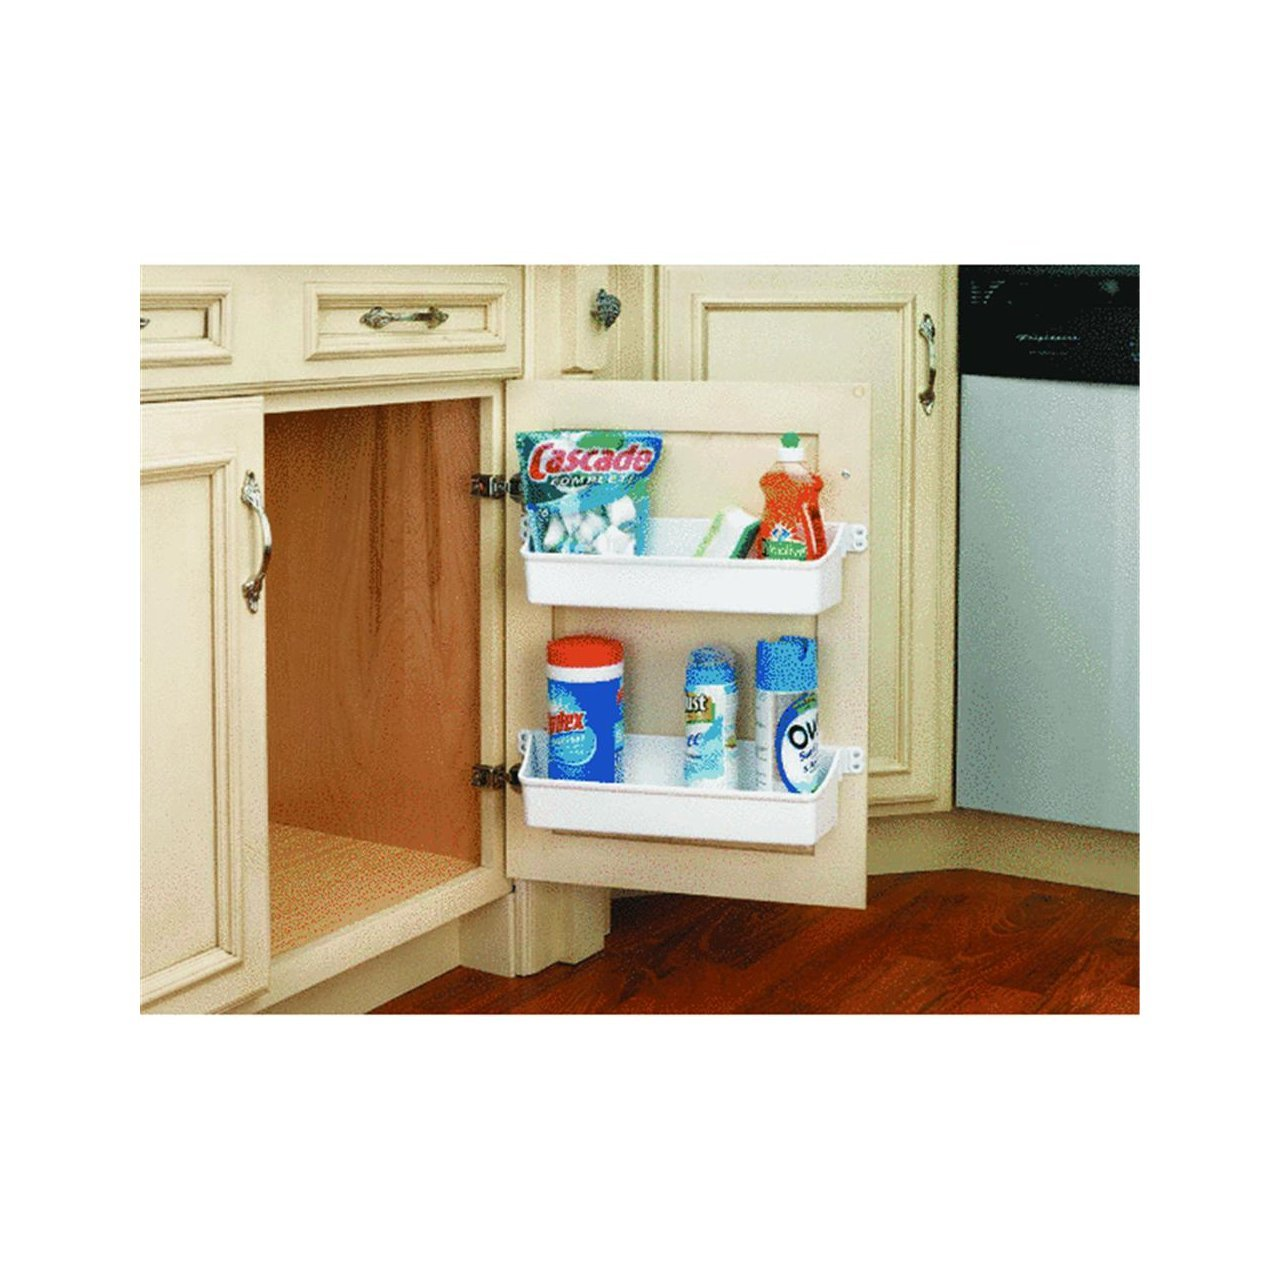 Rev a Shelf 6232-14W-5 Rev-A-Shelf Door Storage Cabinet Organizer Tray Set